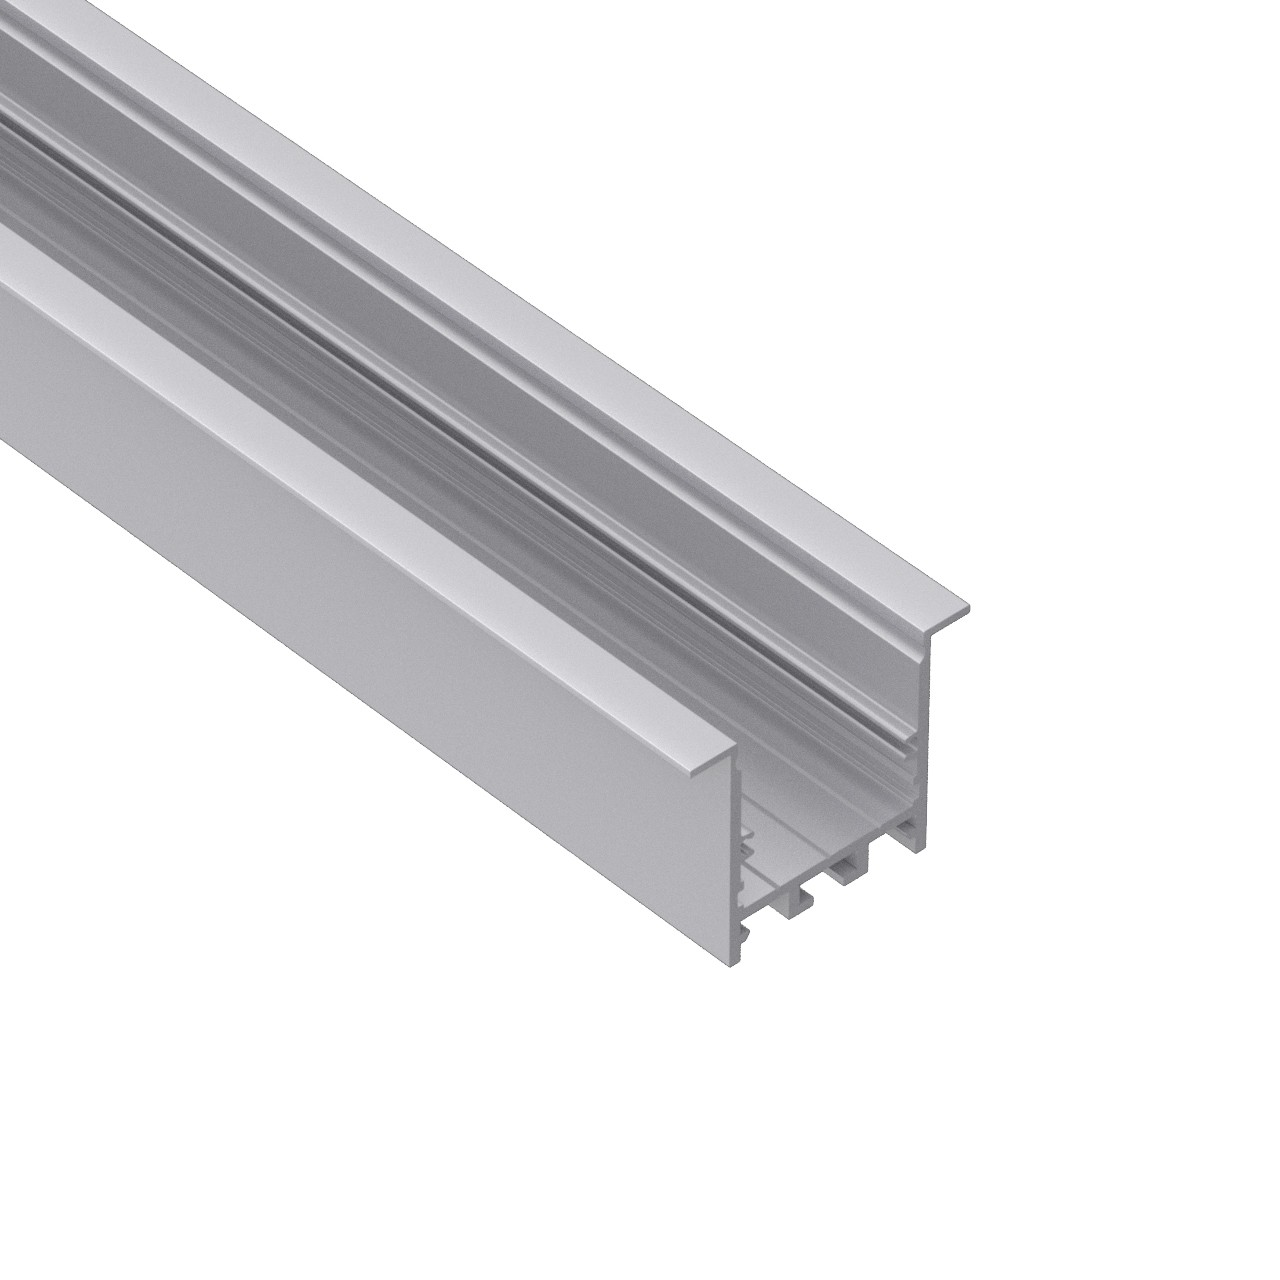 WN31 Recessed led profile 49x37.5mm